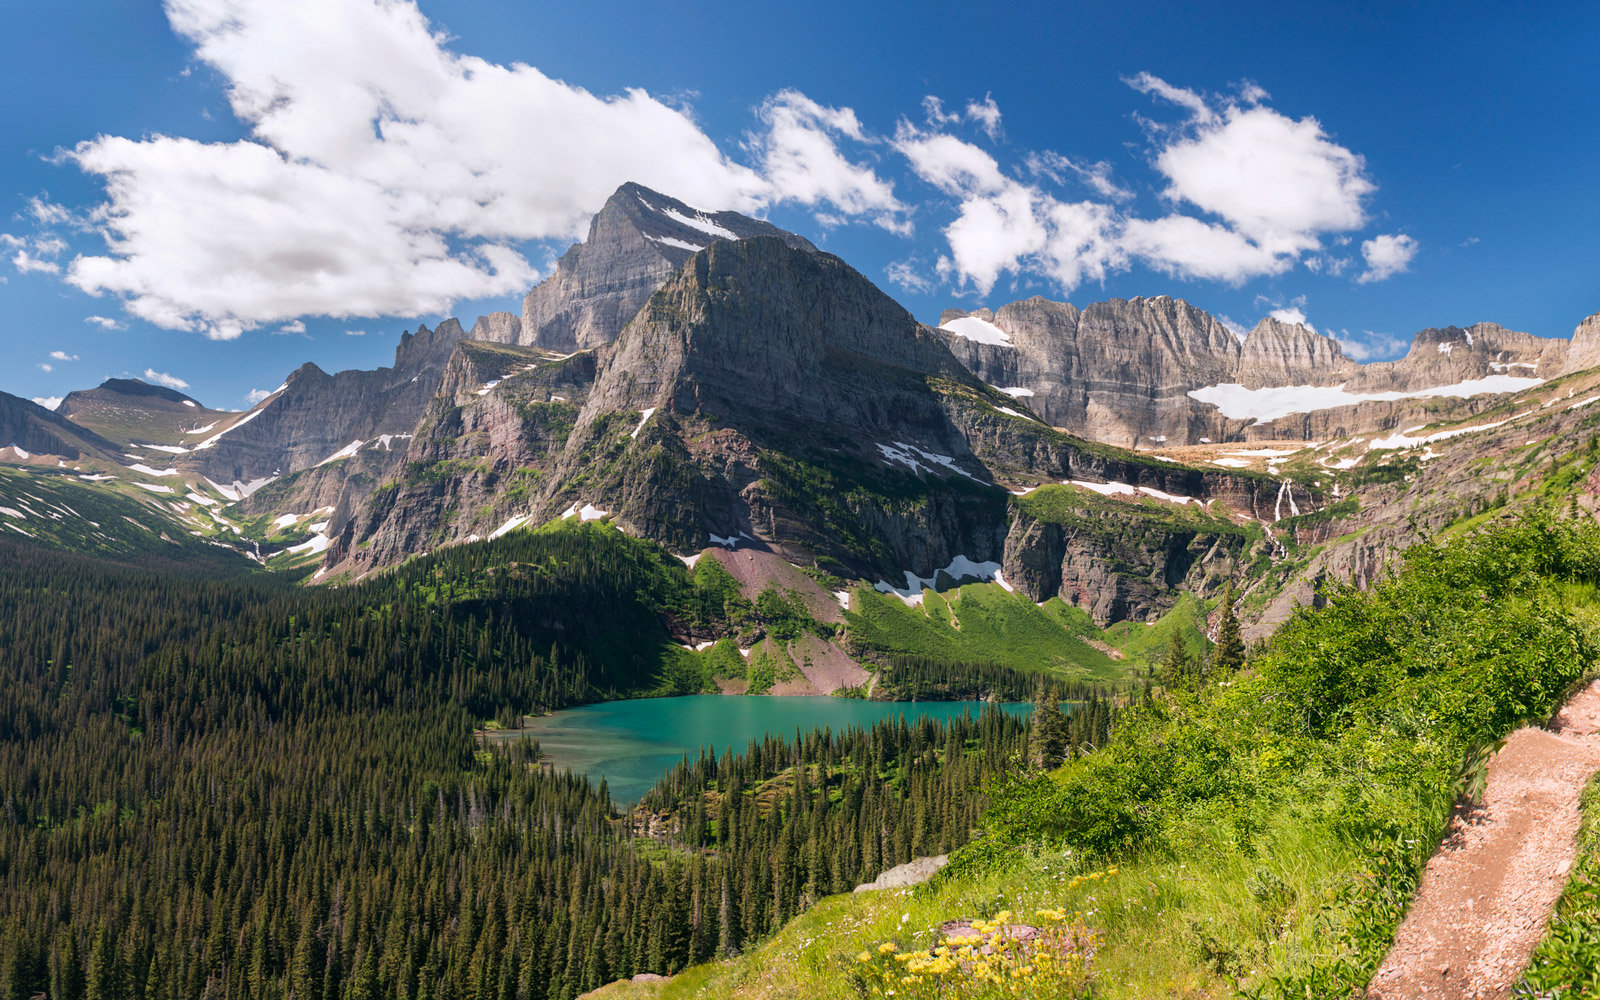 Panoramic view of Grinnell Lake and glacier from the Grinnell Glacier Trail at Glacier National Park in Montana.